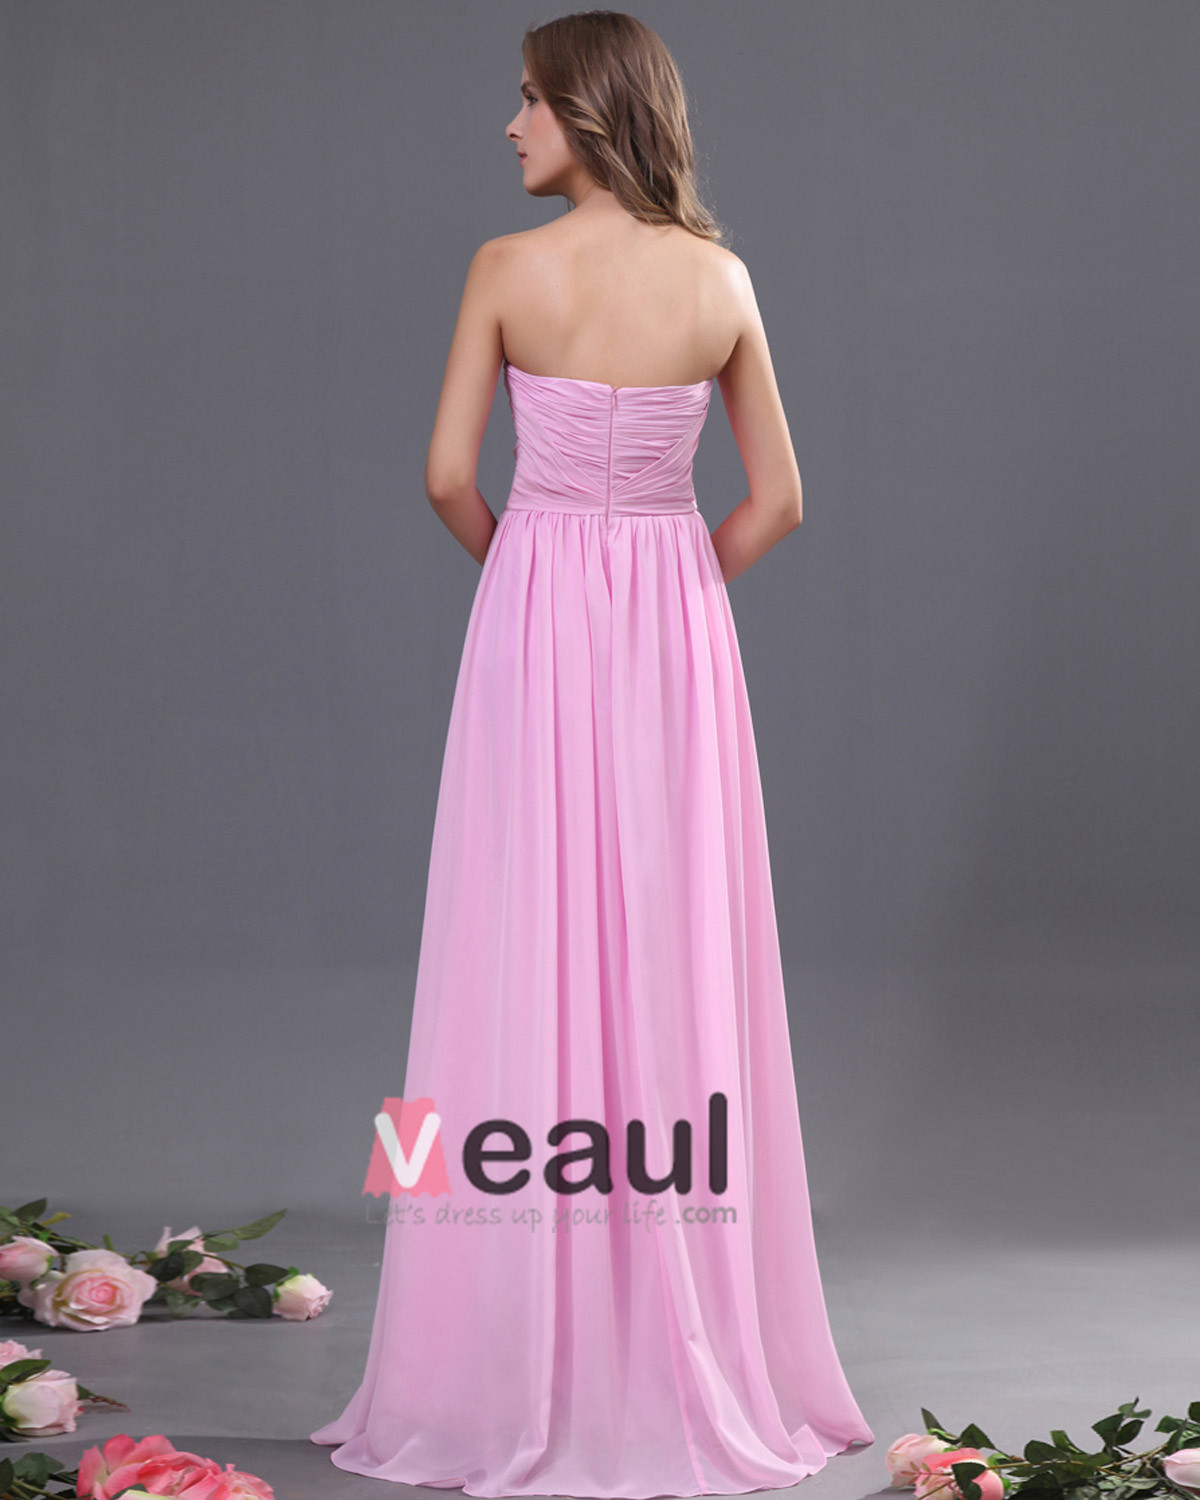 Chiffon Ruffle Floor Length Bridesmaid Dresses